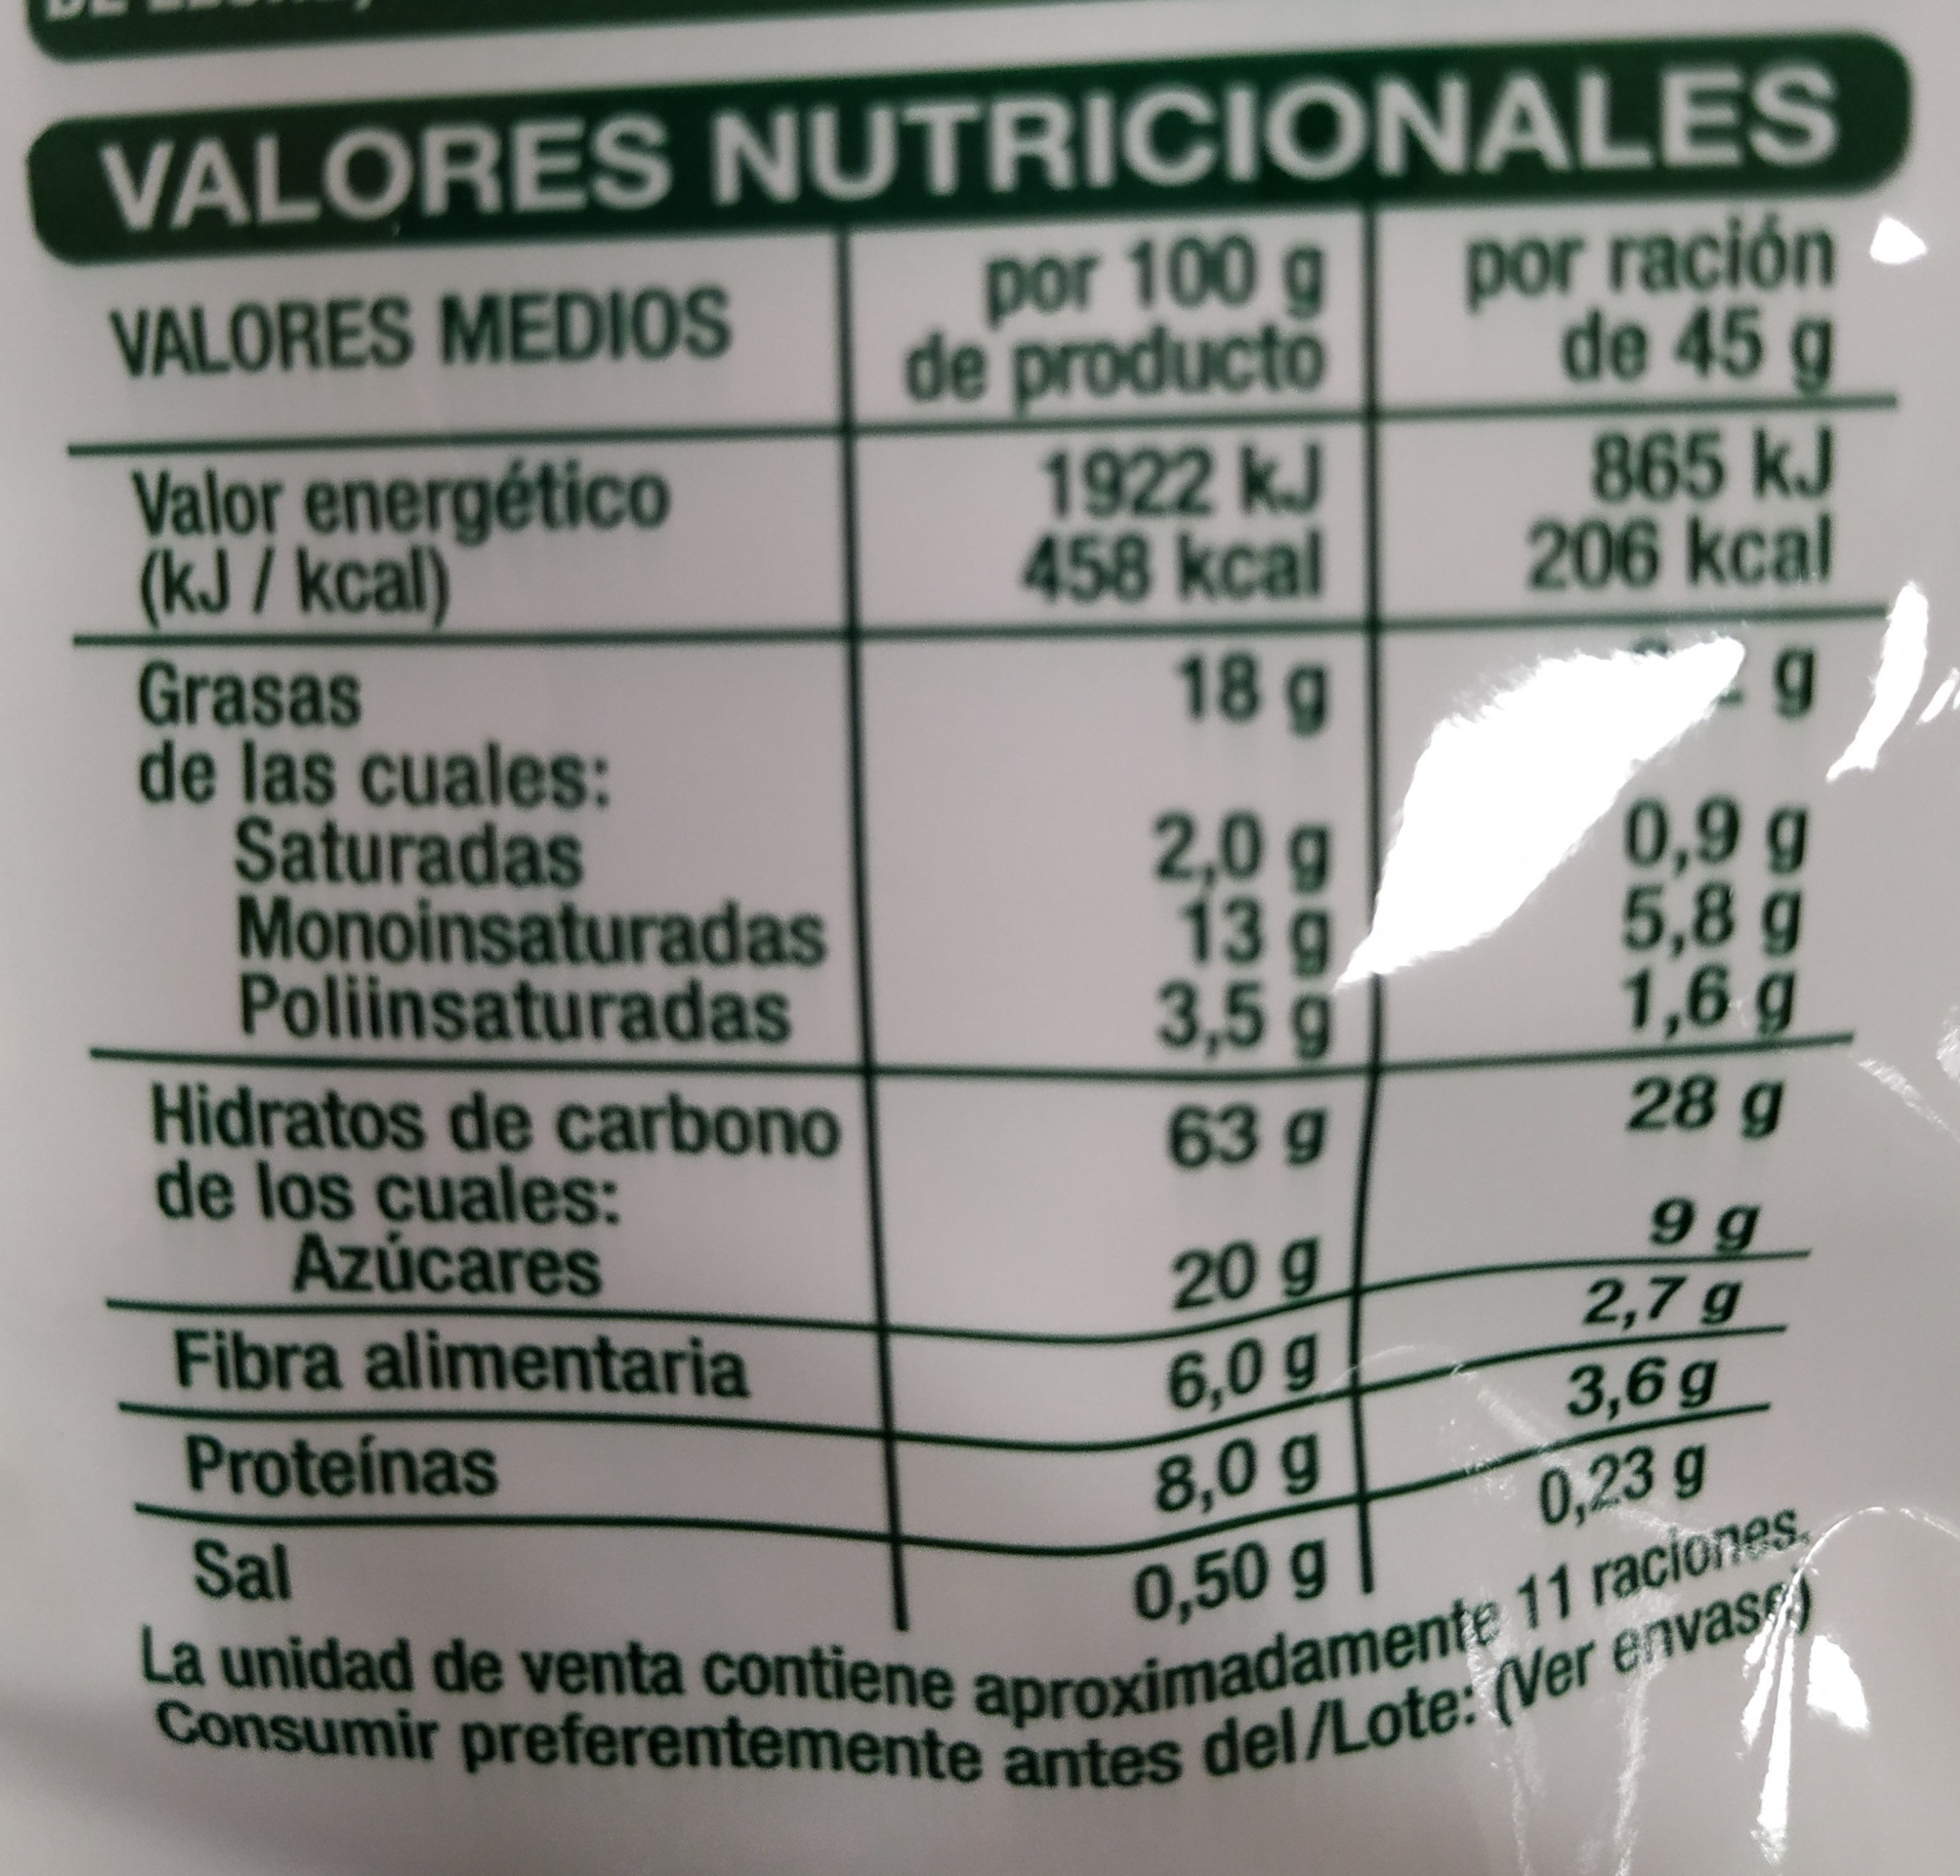 Muesli crujiente con frutos secos - Nutrition facts